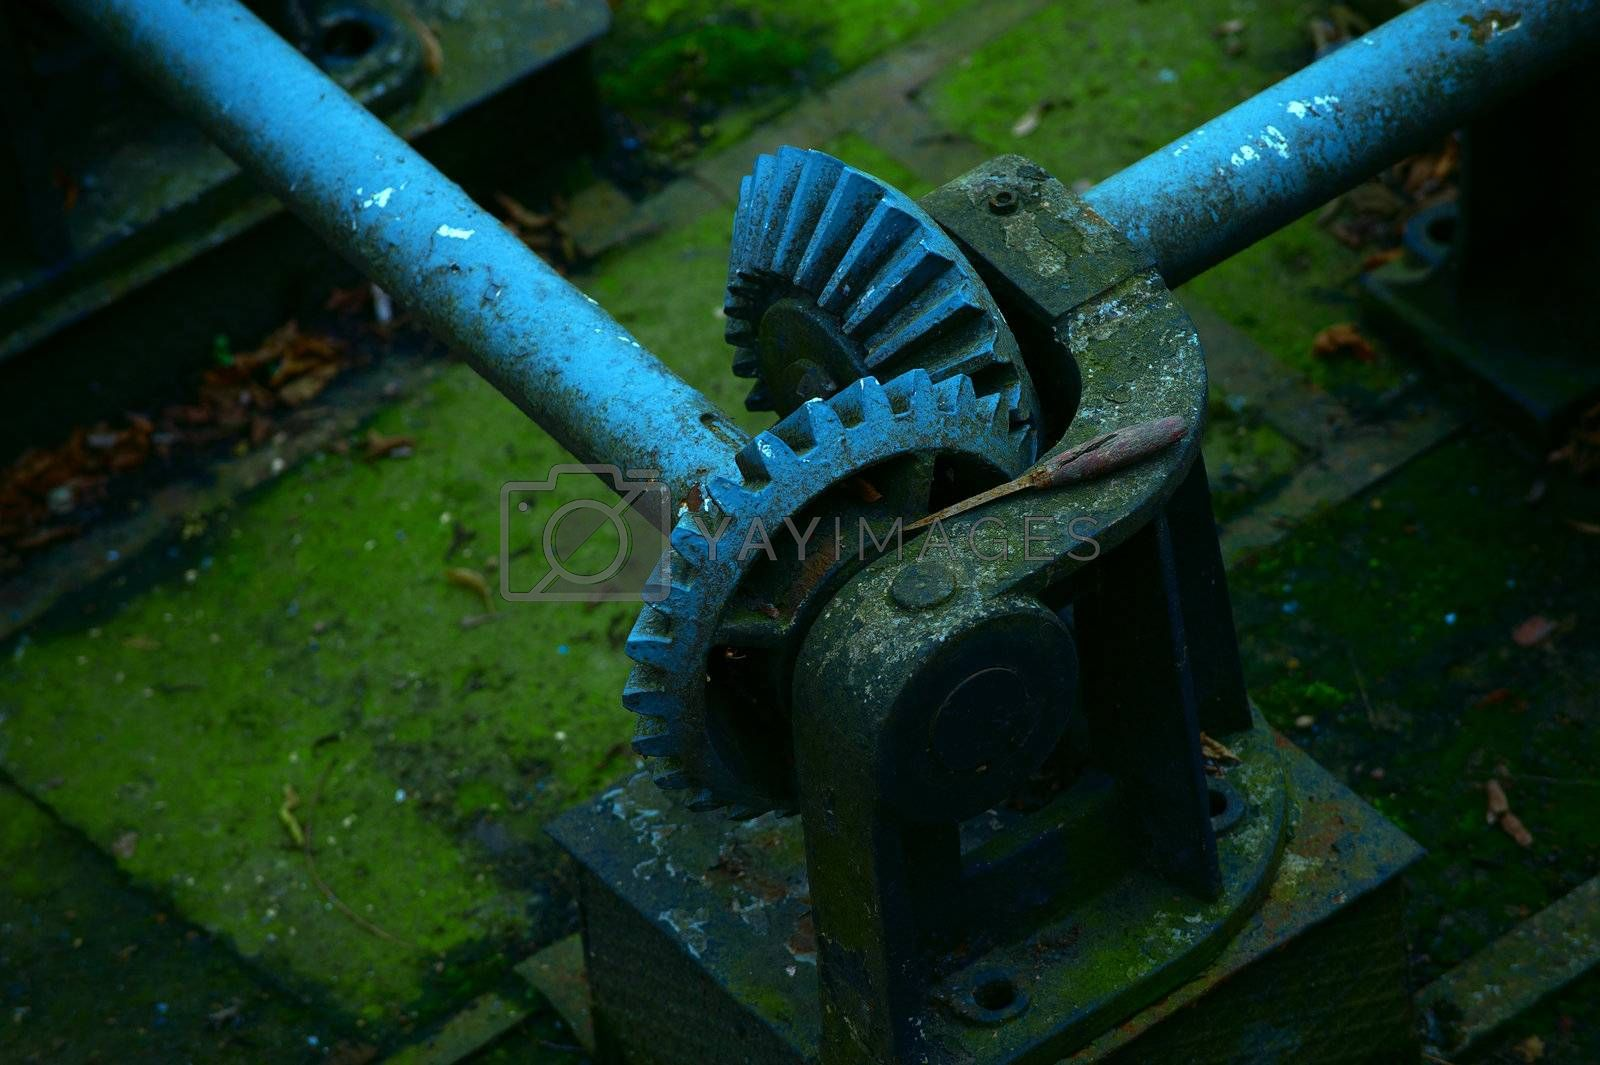 Gear. Part of the governance of the old gateway